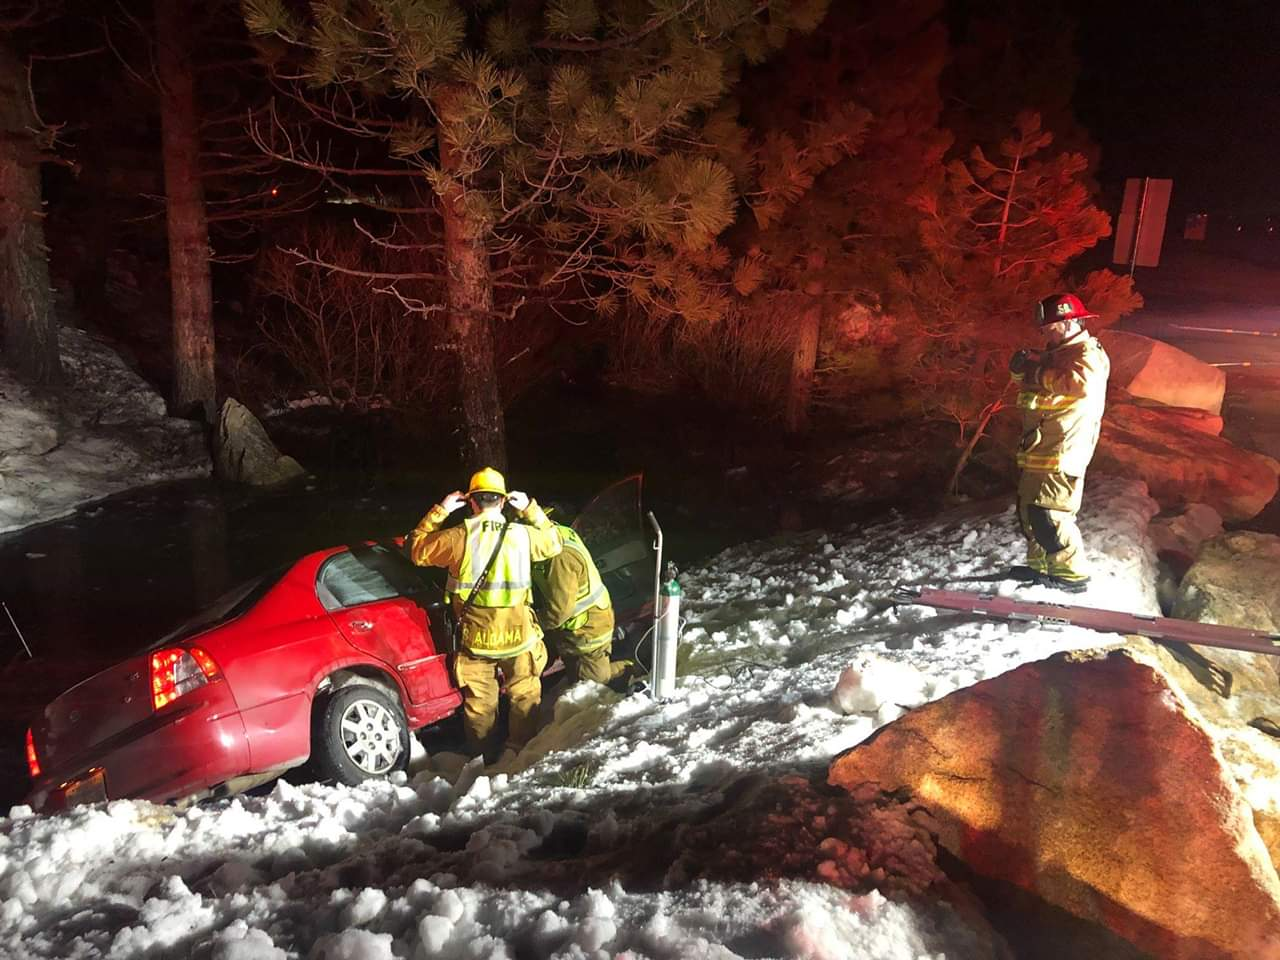 Solo Vehicle Accident Into A Pond Sends Driver To The